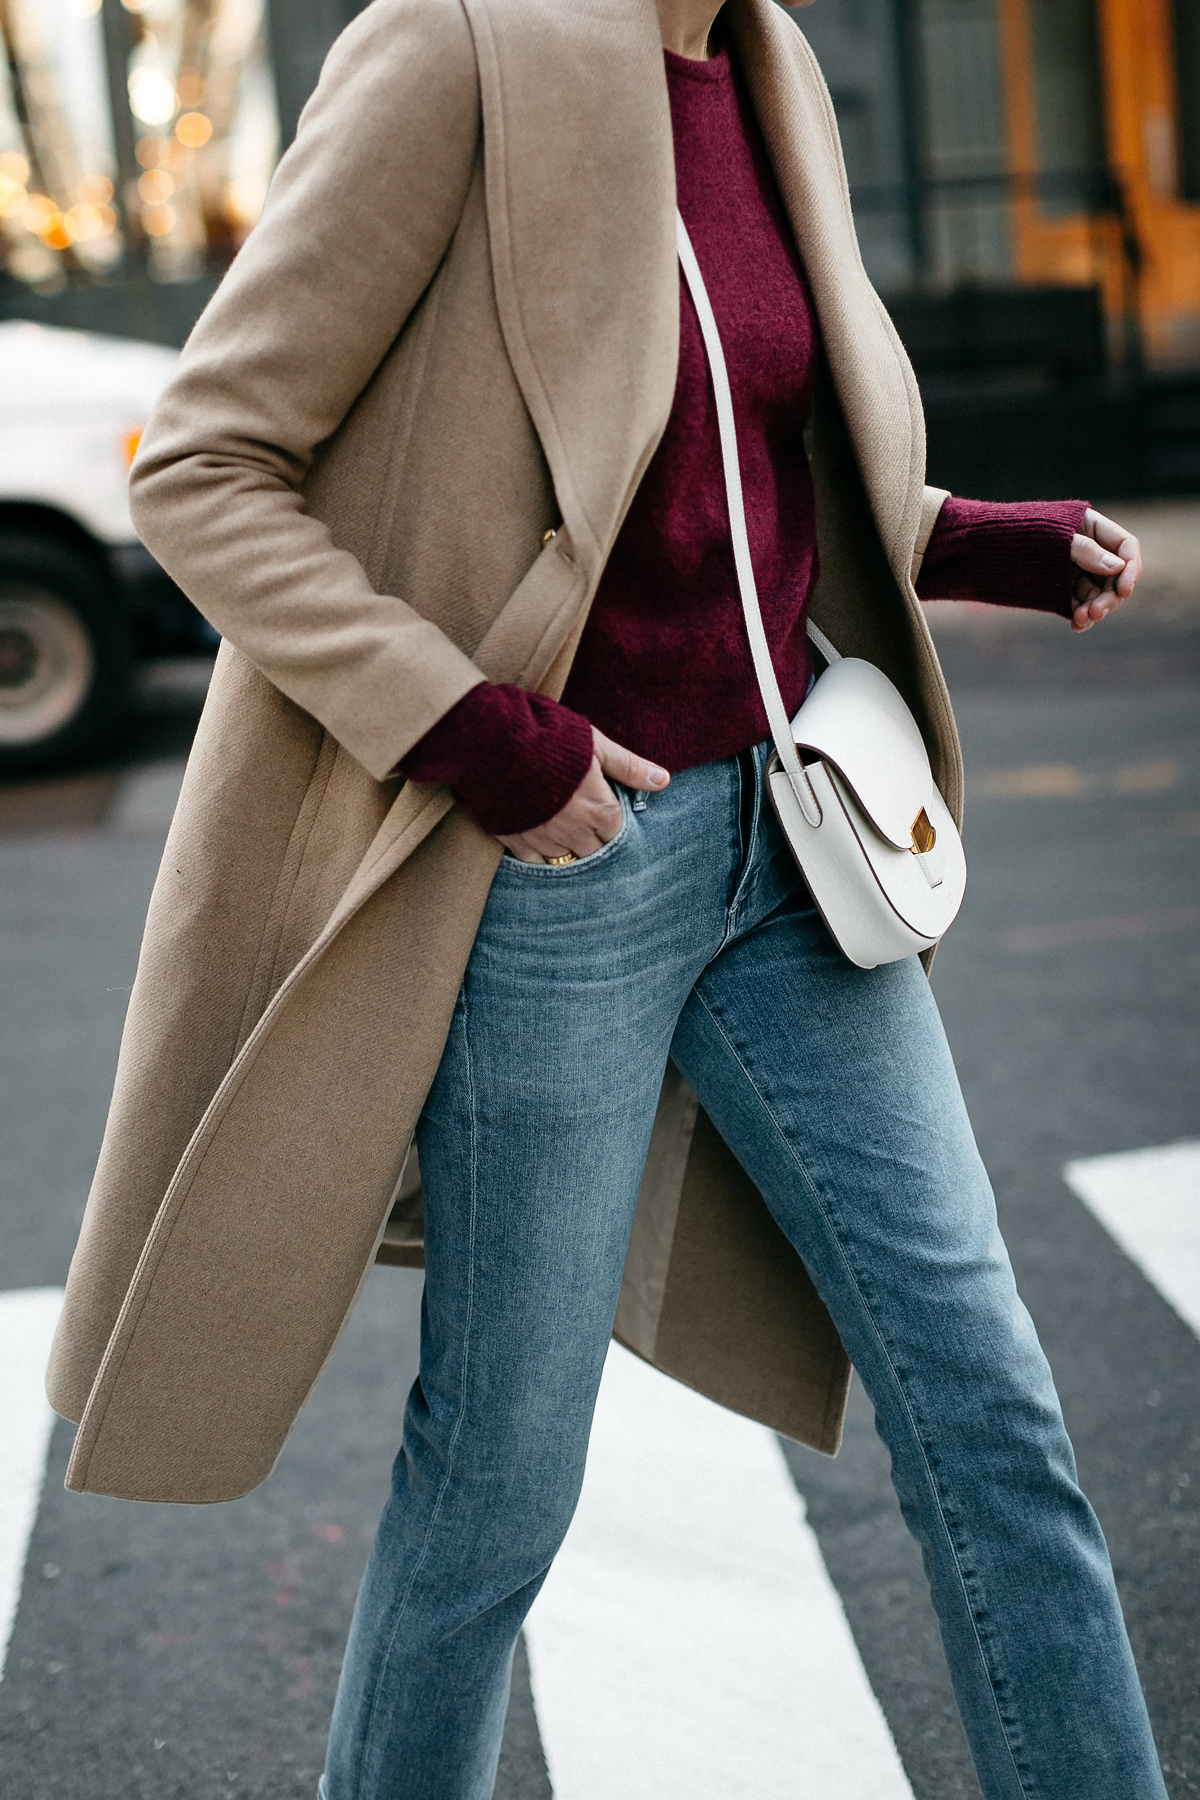 Woman Wearing Club Monaco Camel Coat Burgundy Sweater Denim Jeans White Celine Trotteur Handbag Fashion Jackson Dallas Blogger Fashion Blogger Street Style New York Fashion Week